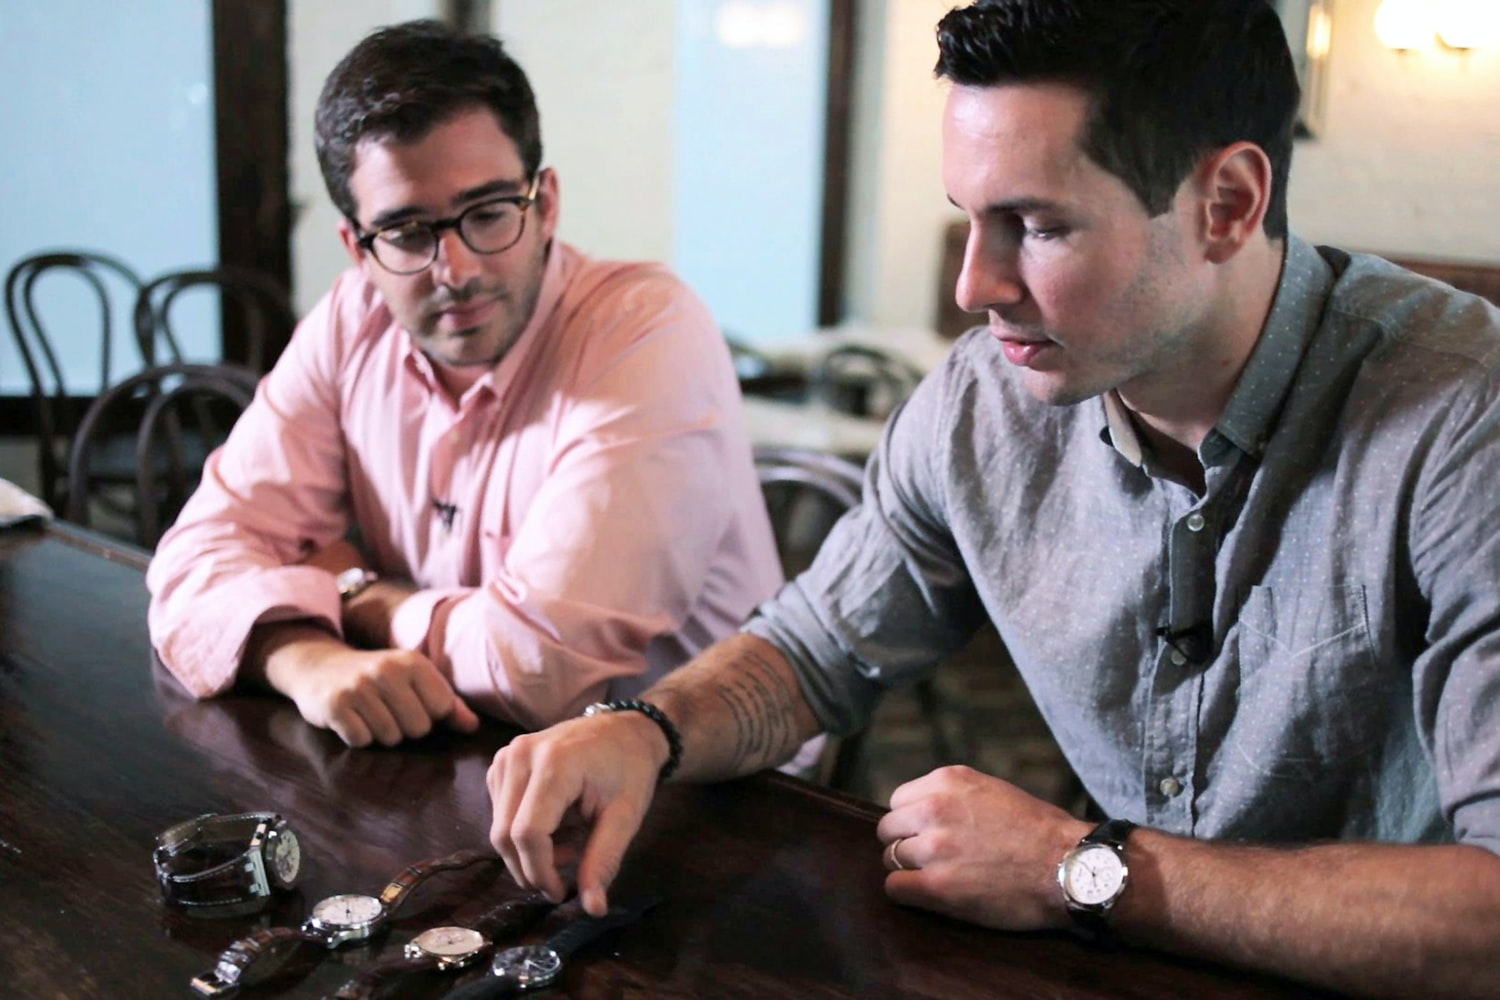 Talking Watches: With J.J. Redick